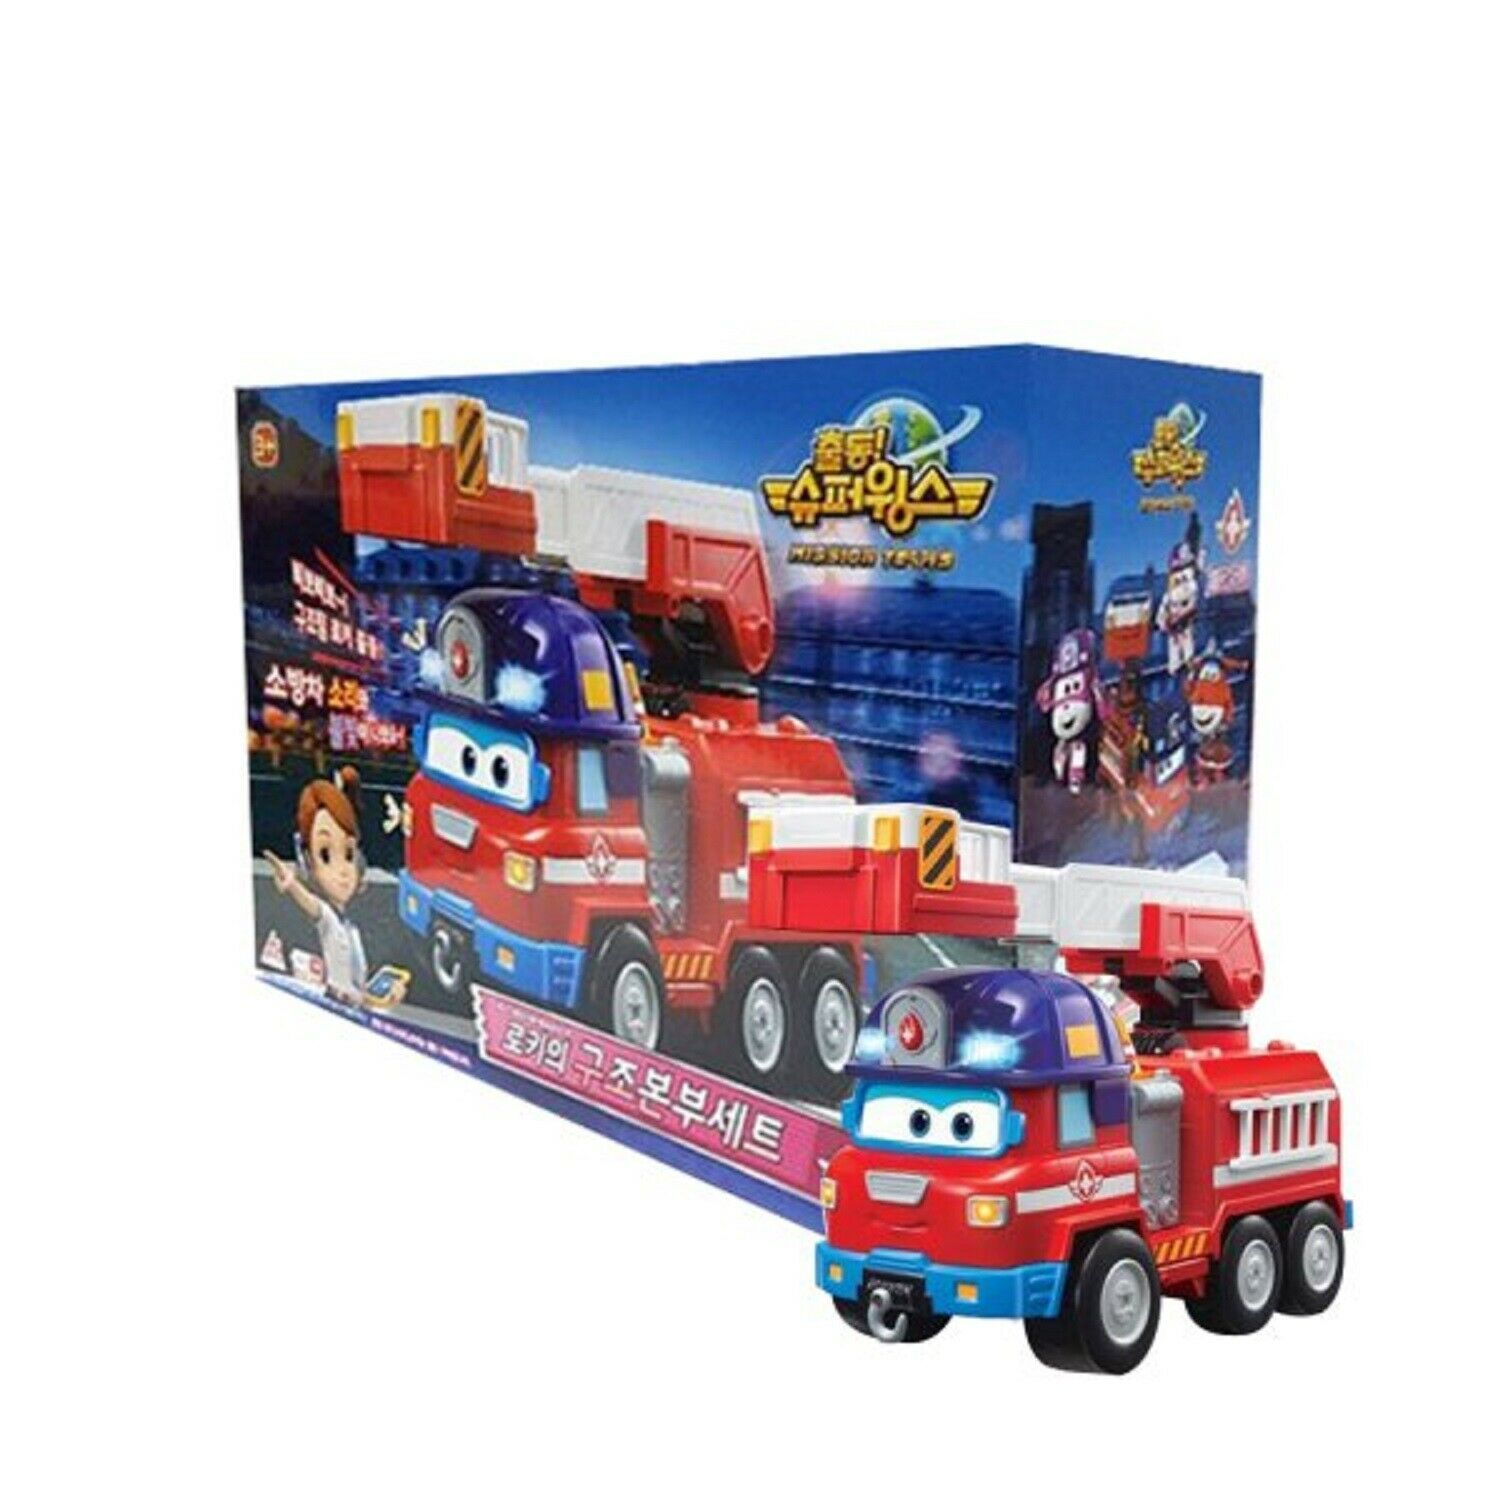 Super Wings Sparky Rocky Rescue Headquarters Set Fire Engine Vehicle Truck Toy